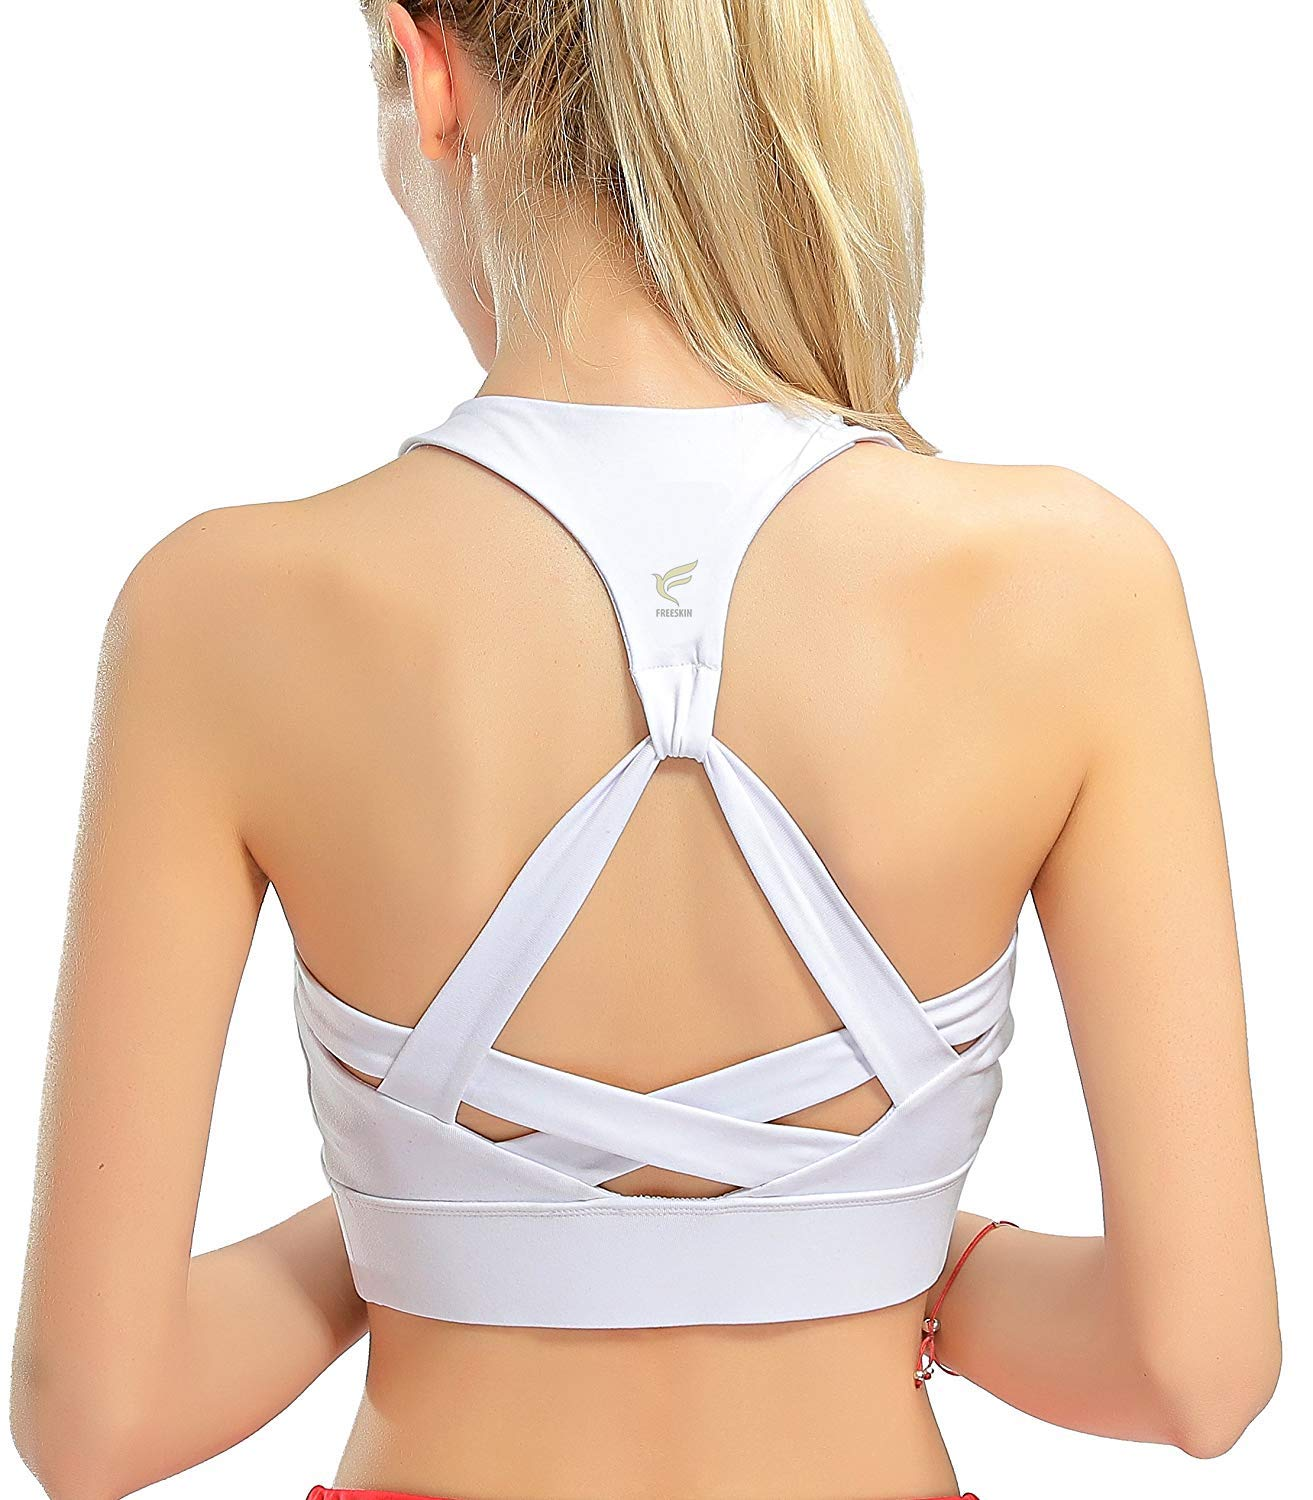 freeskin Fitness Women Sport Bra Fitness Padded Yoga Bra Workout Gym Top(2171White,XL)